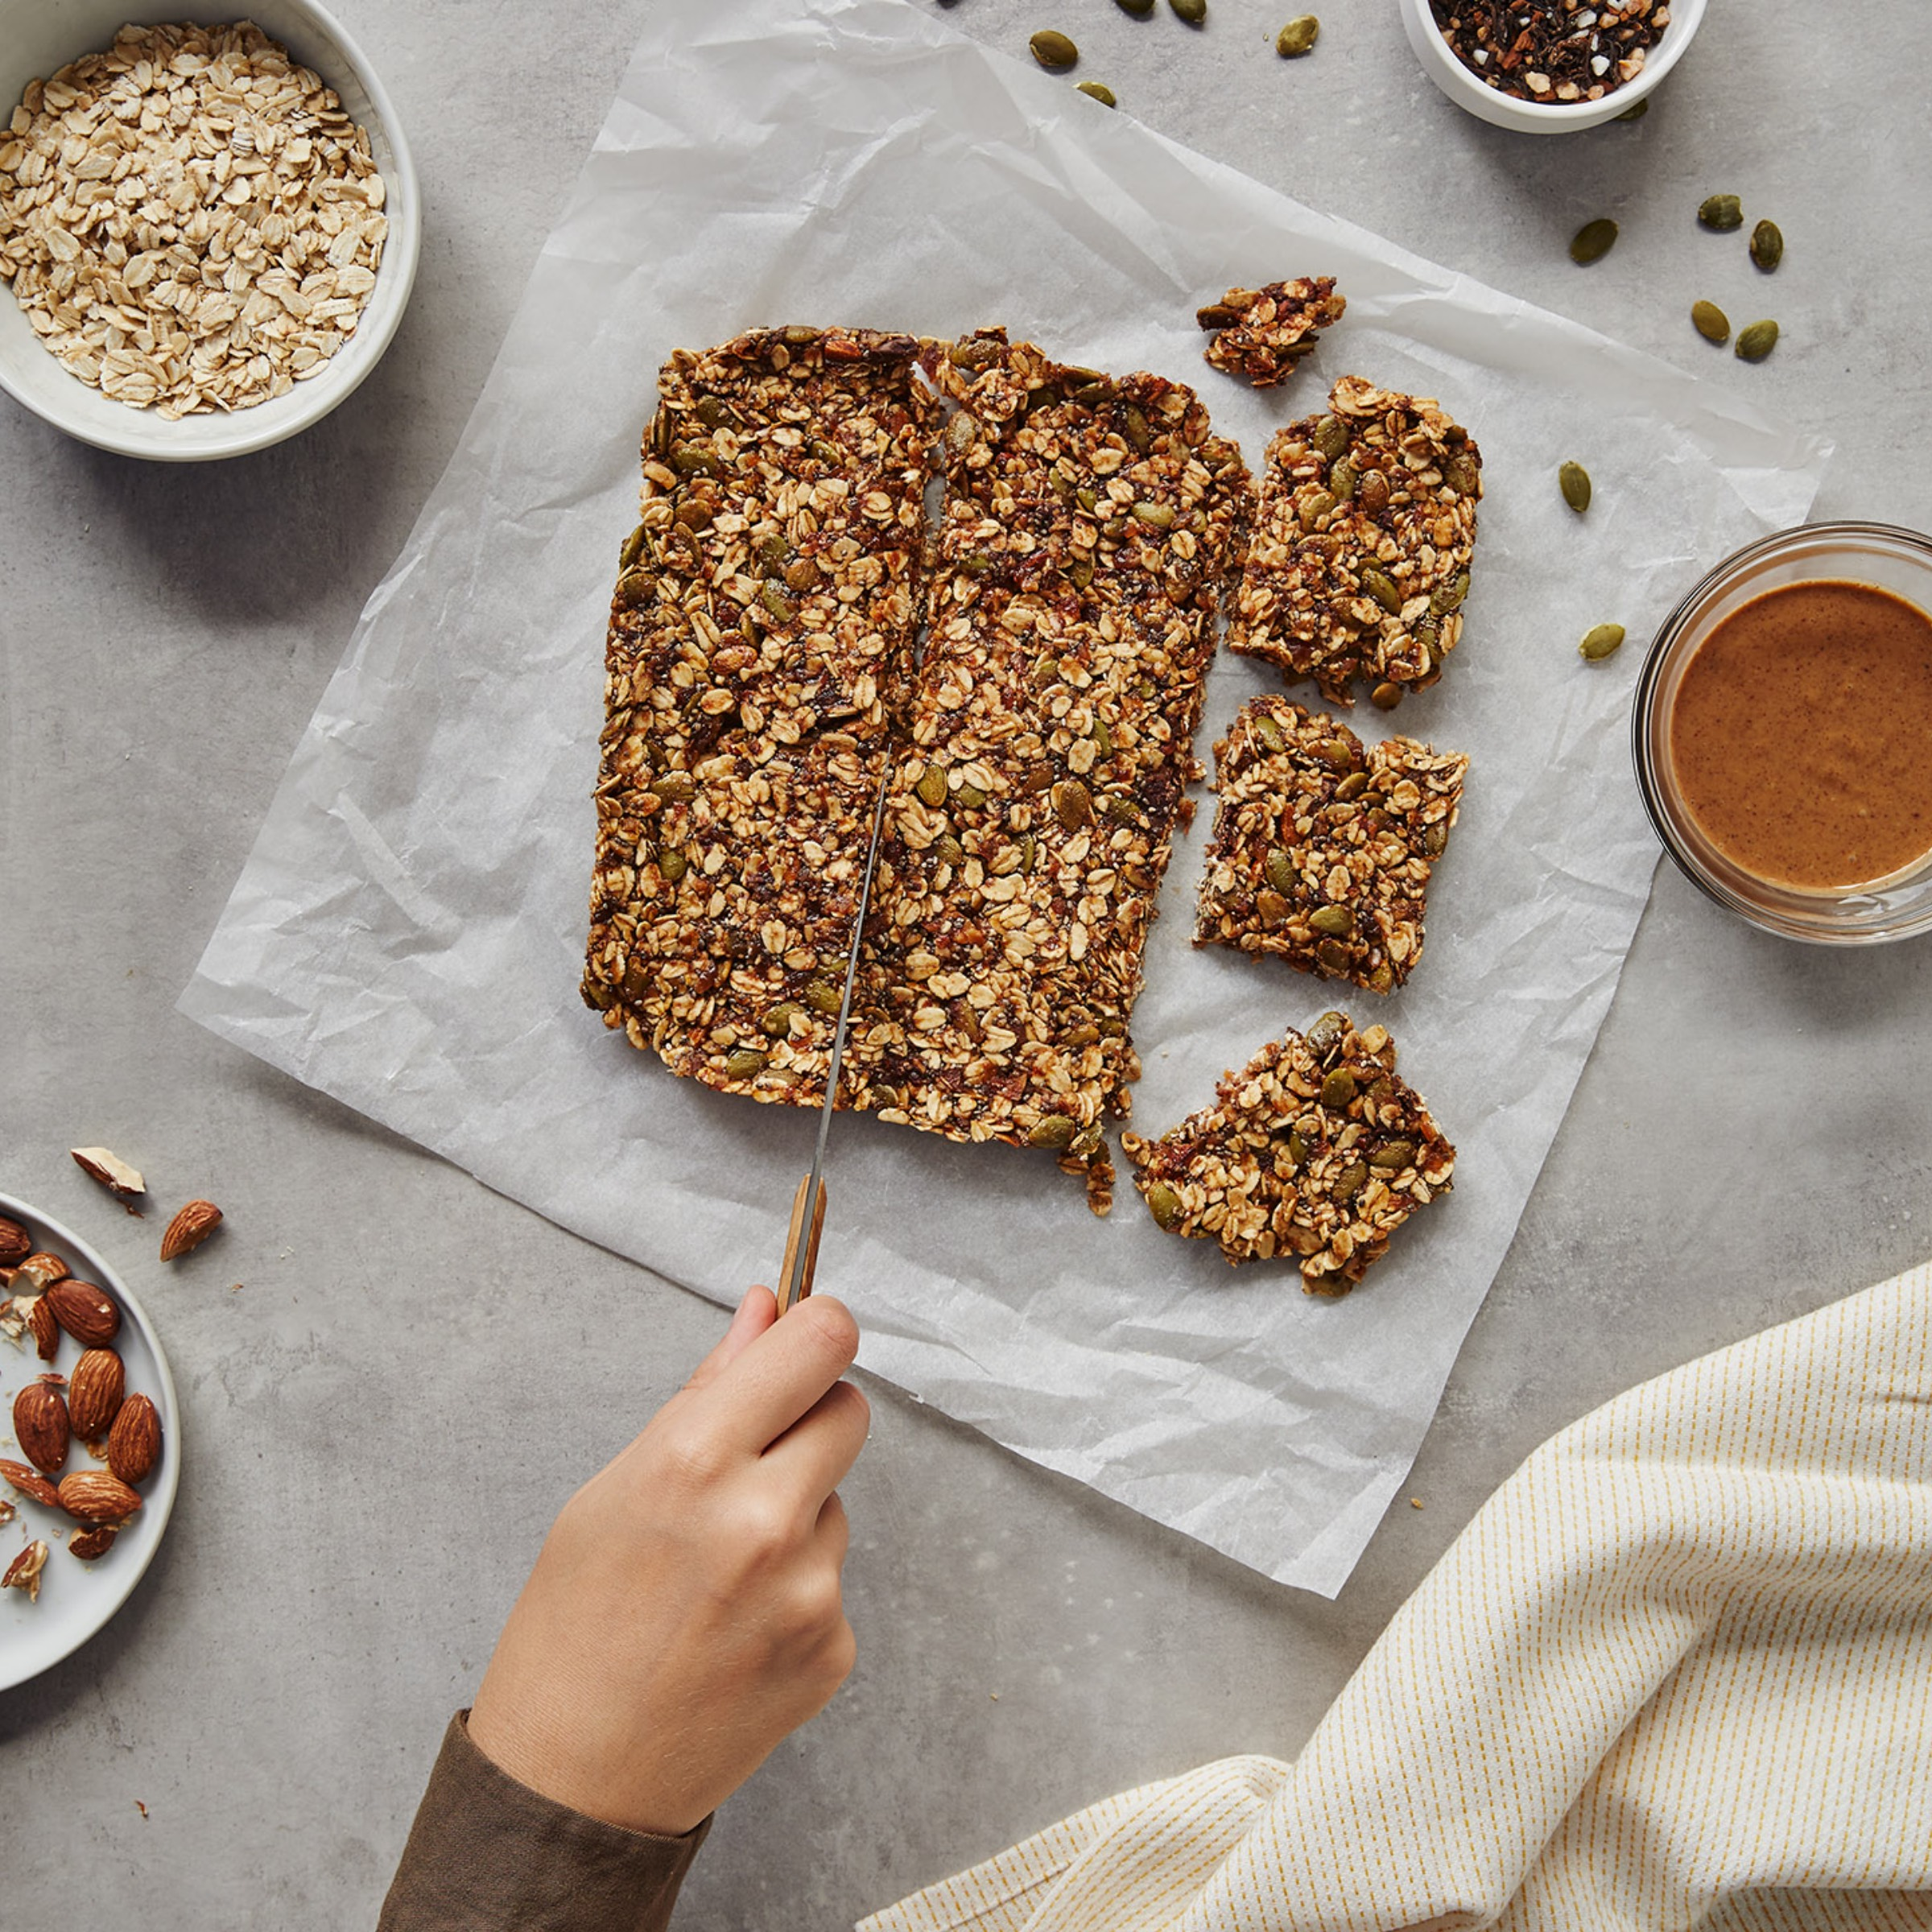 A hand cutting an energy bar in small squares on a kitchen counter